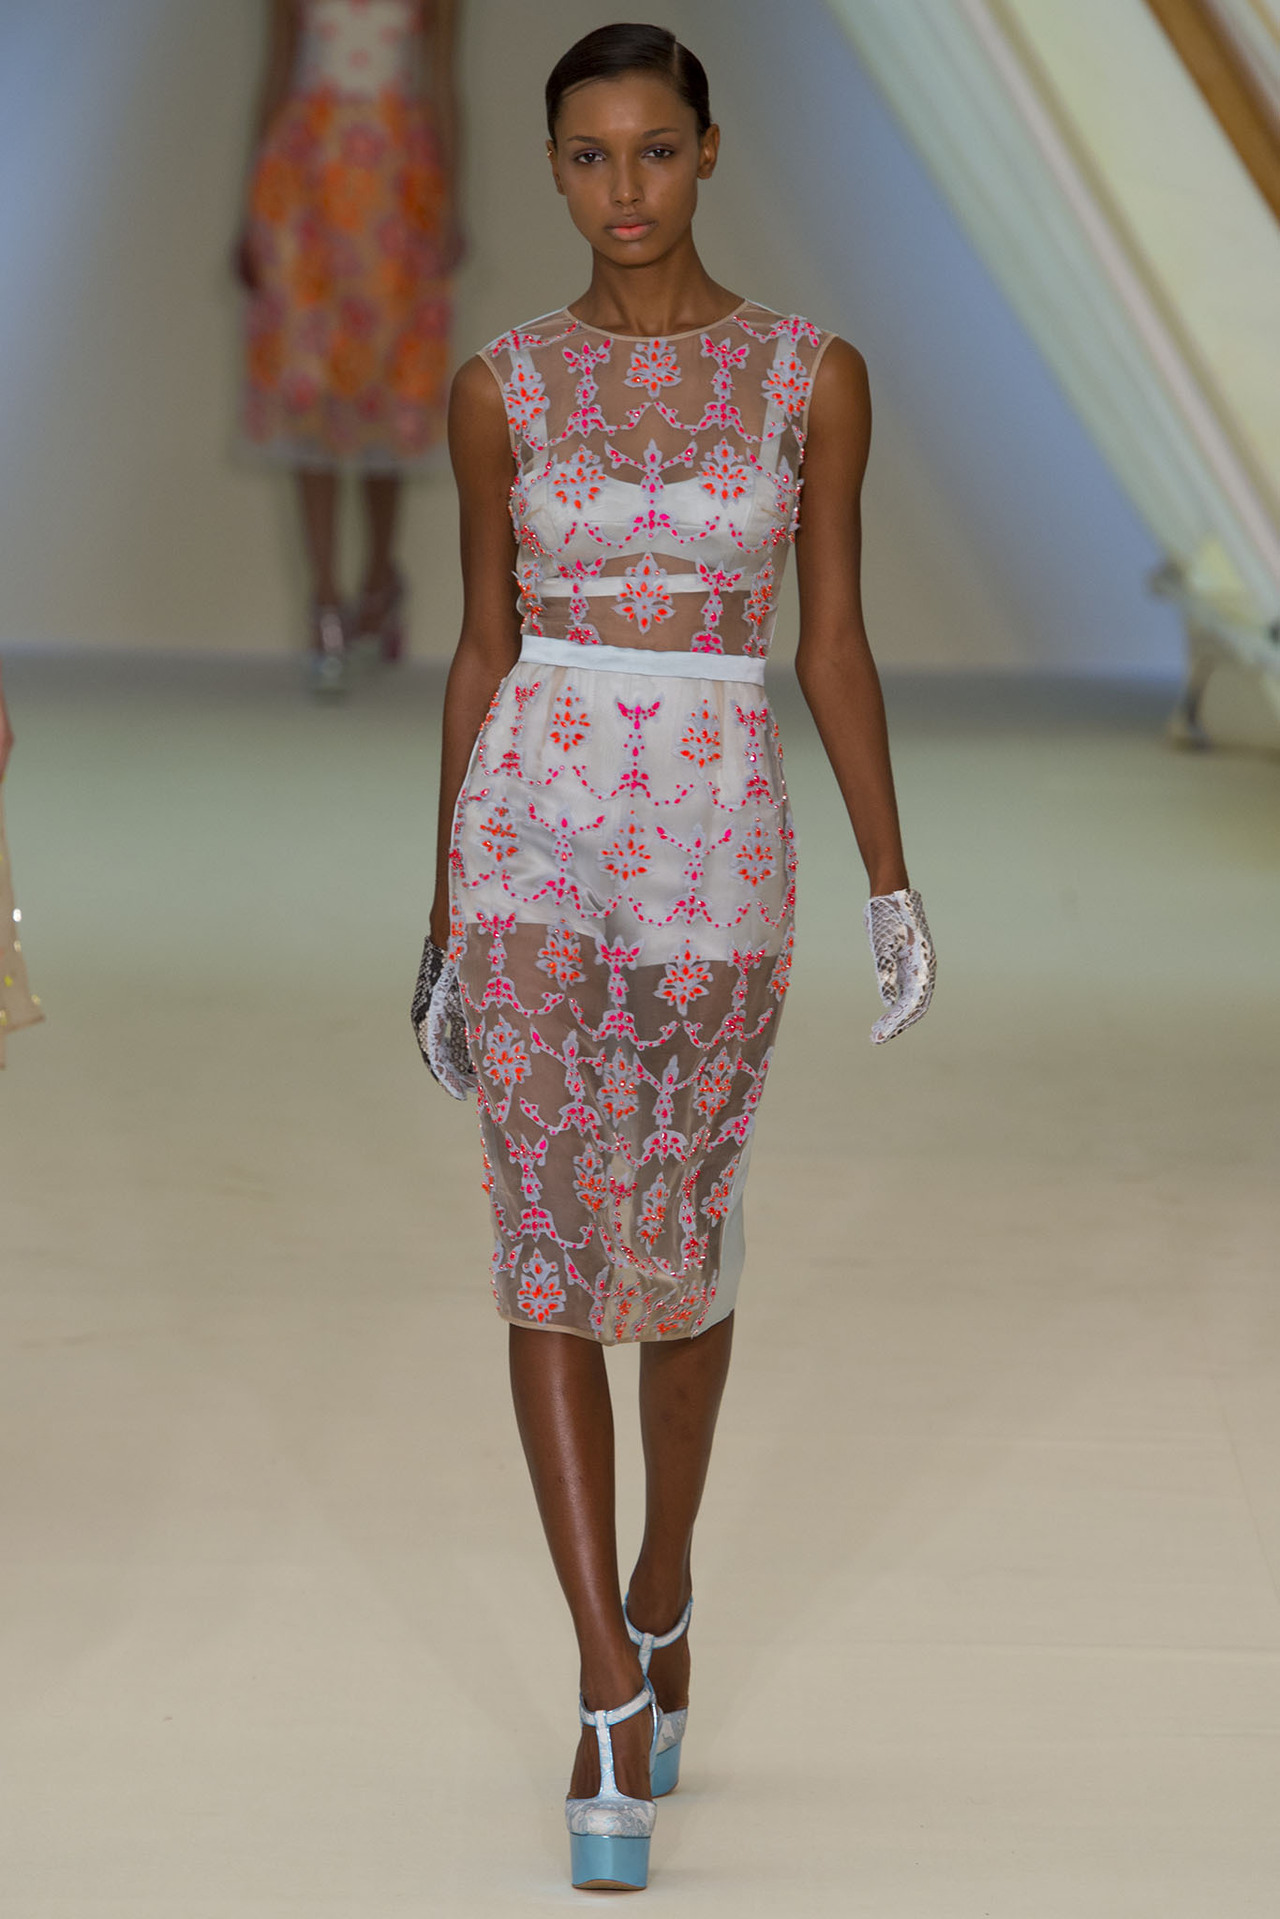 Erdem Spring 2013 – London Fashion Week